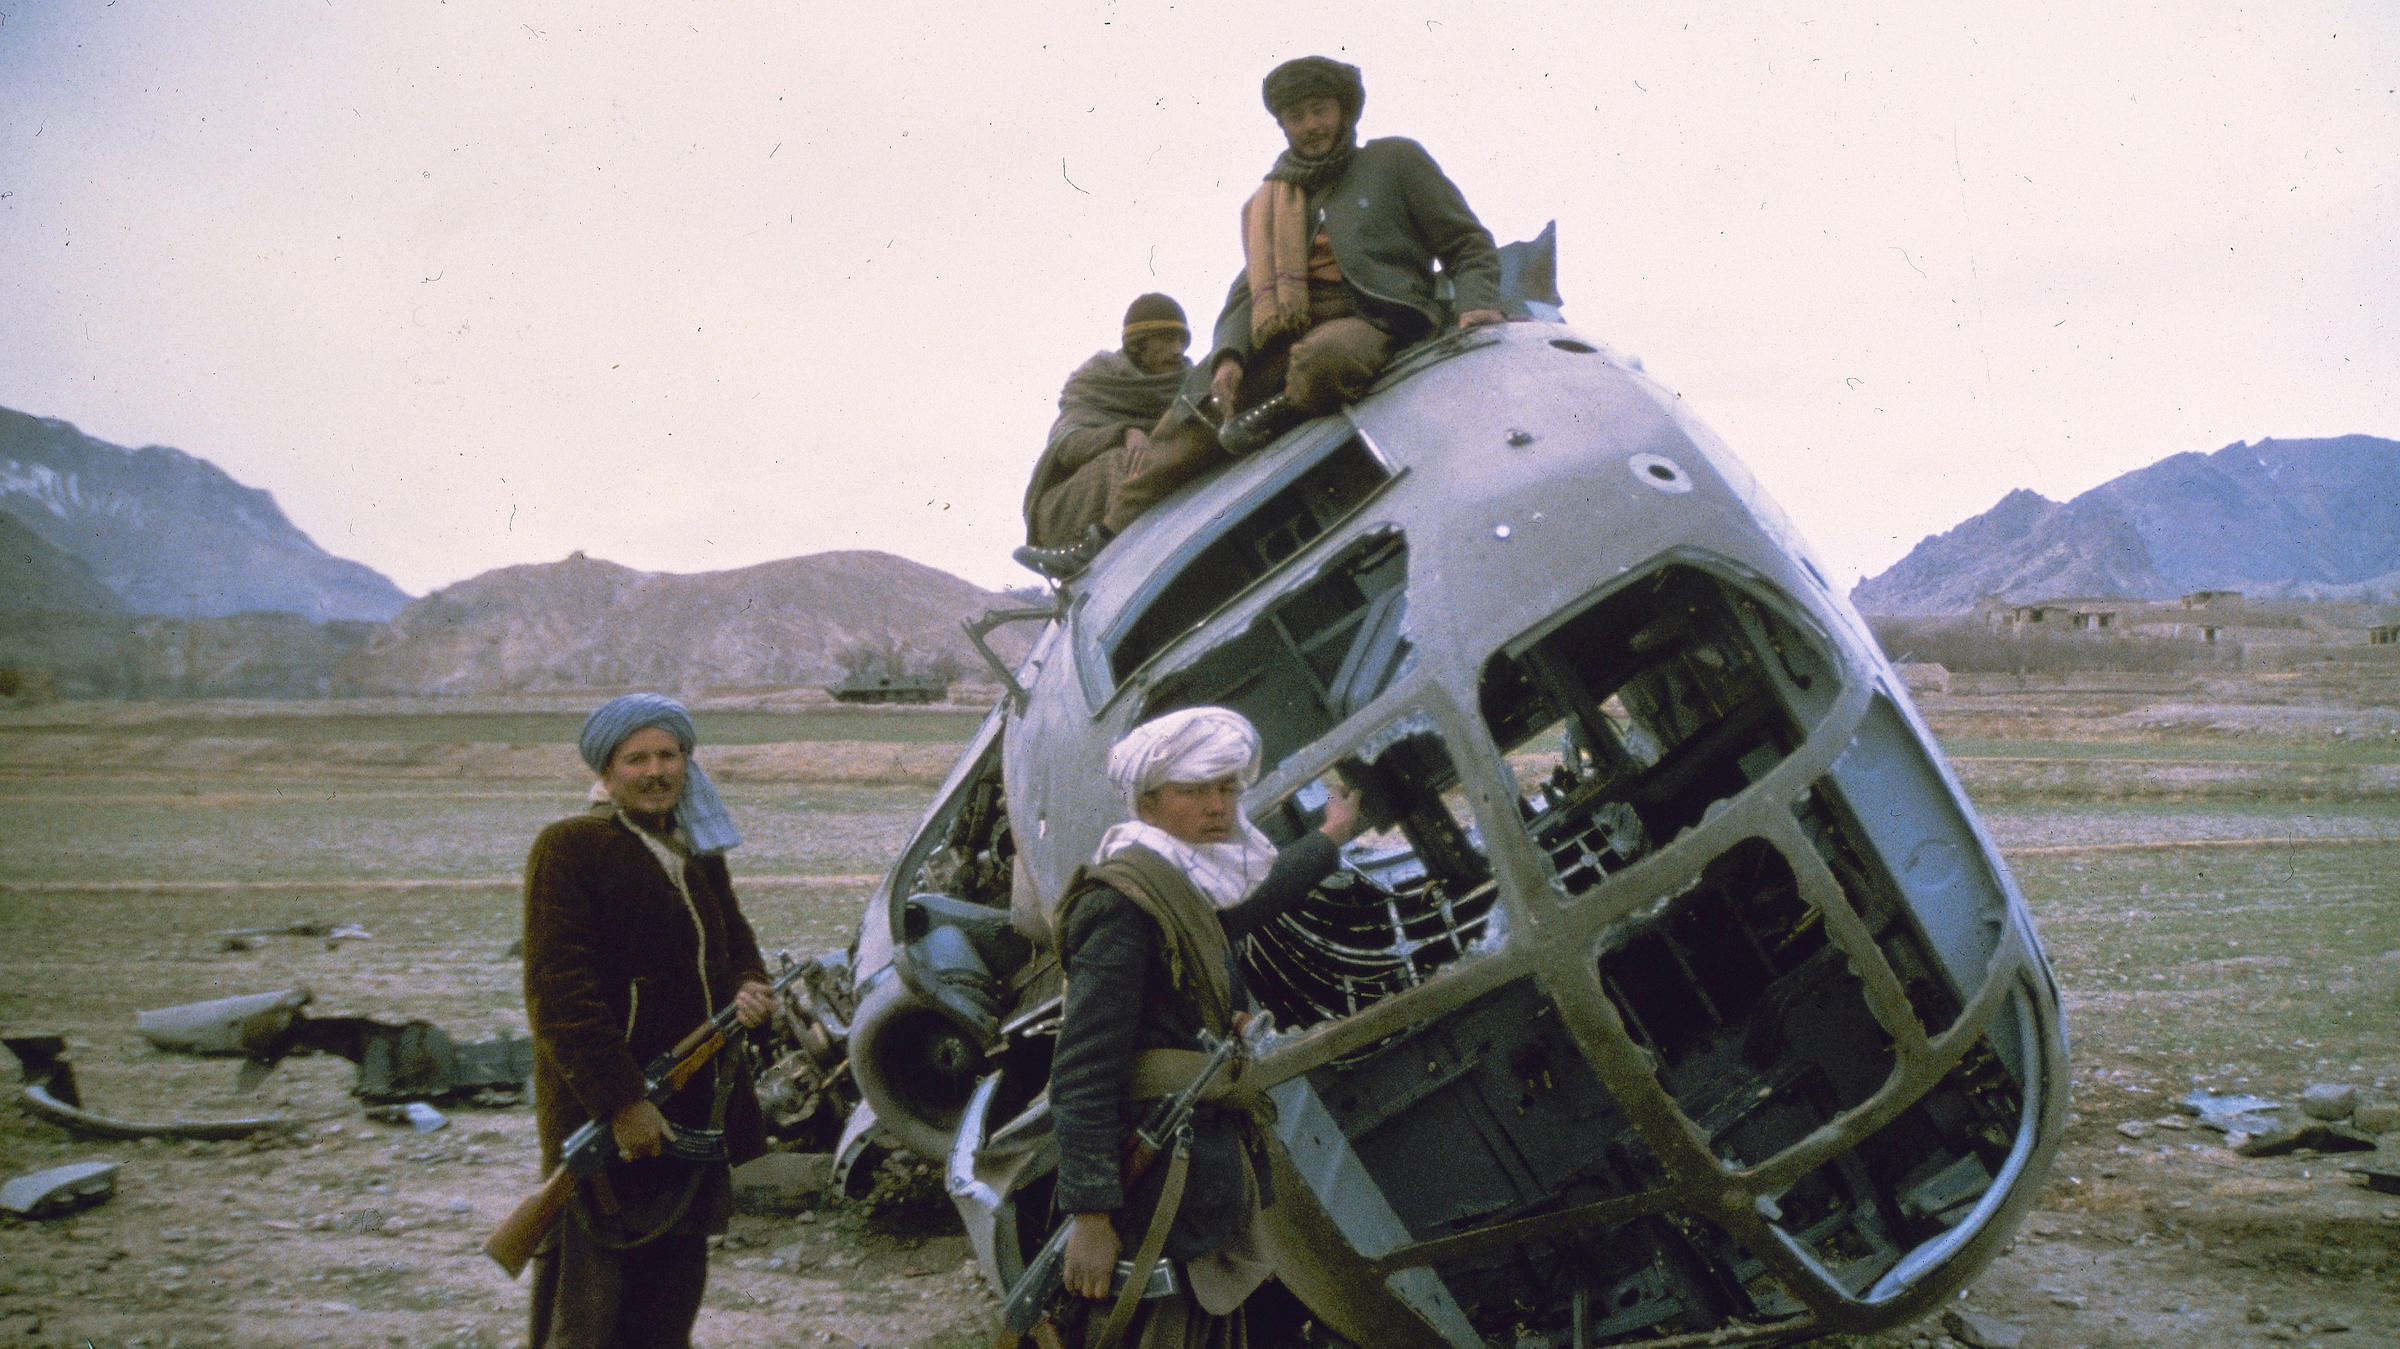 u s intervention in the ussr mujahideen